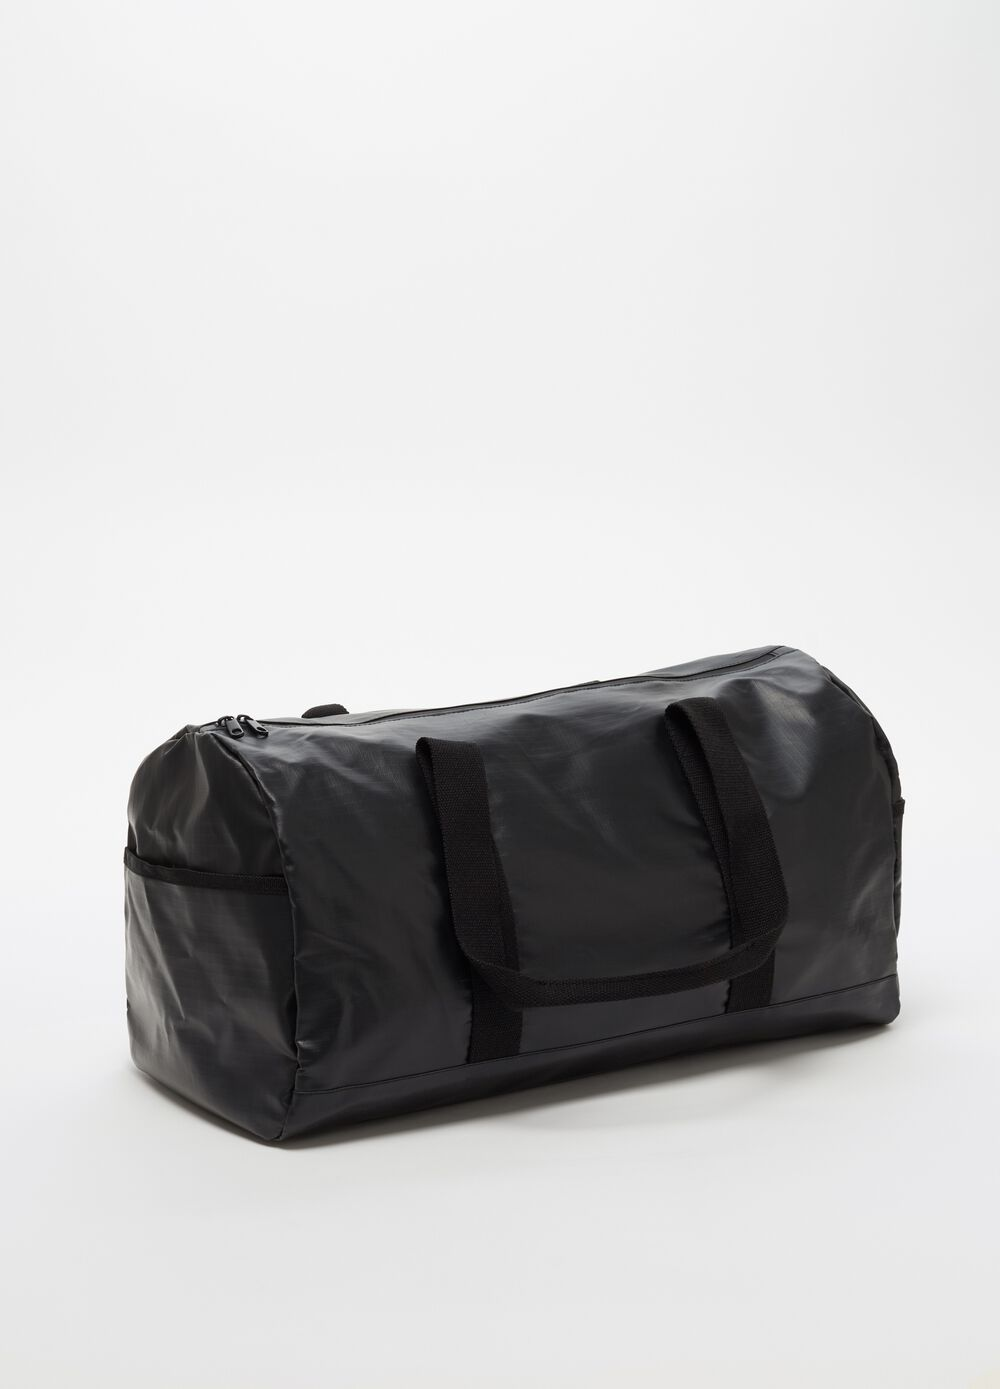 Large solid colour bag with handles